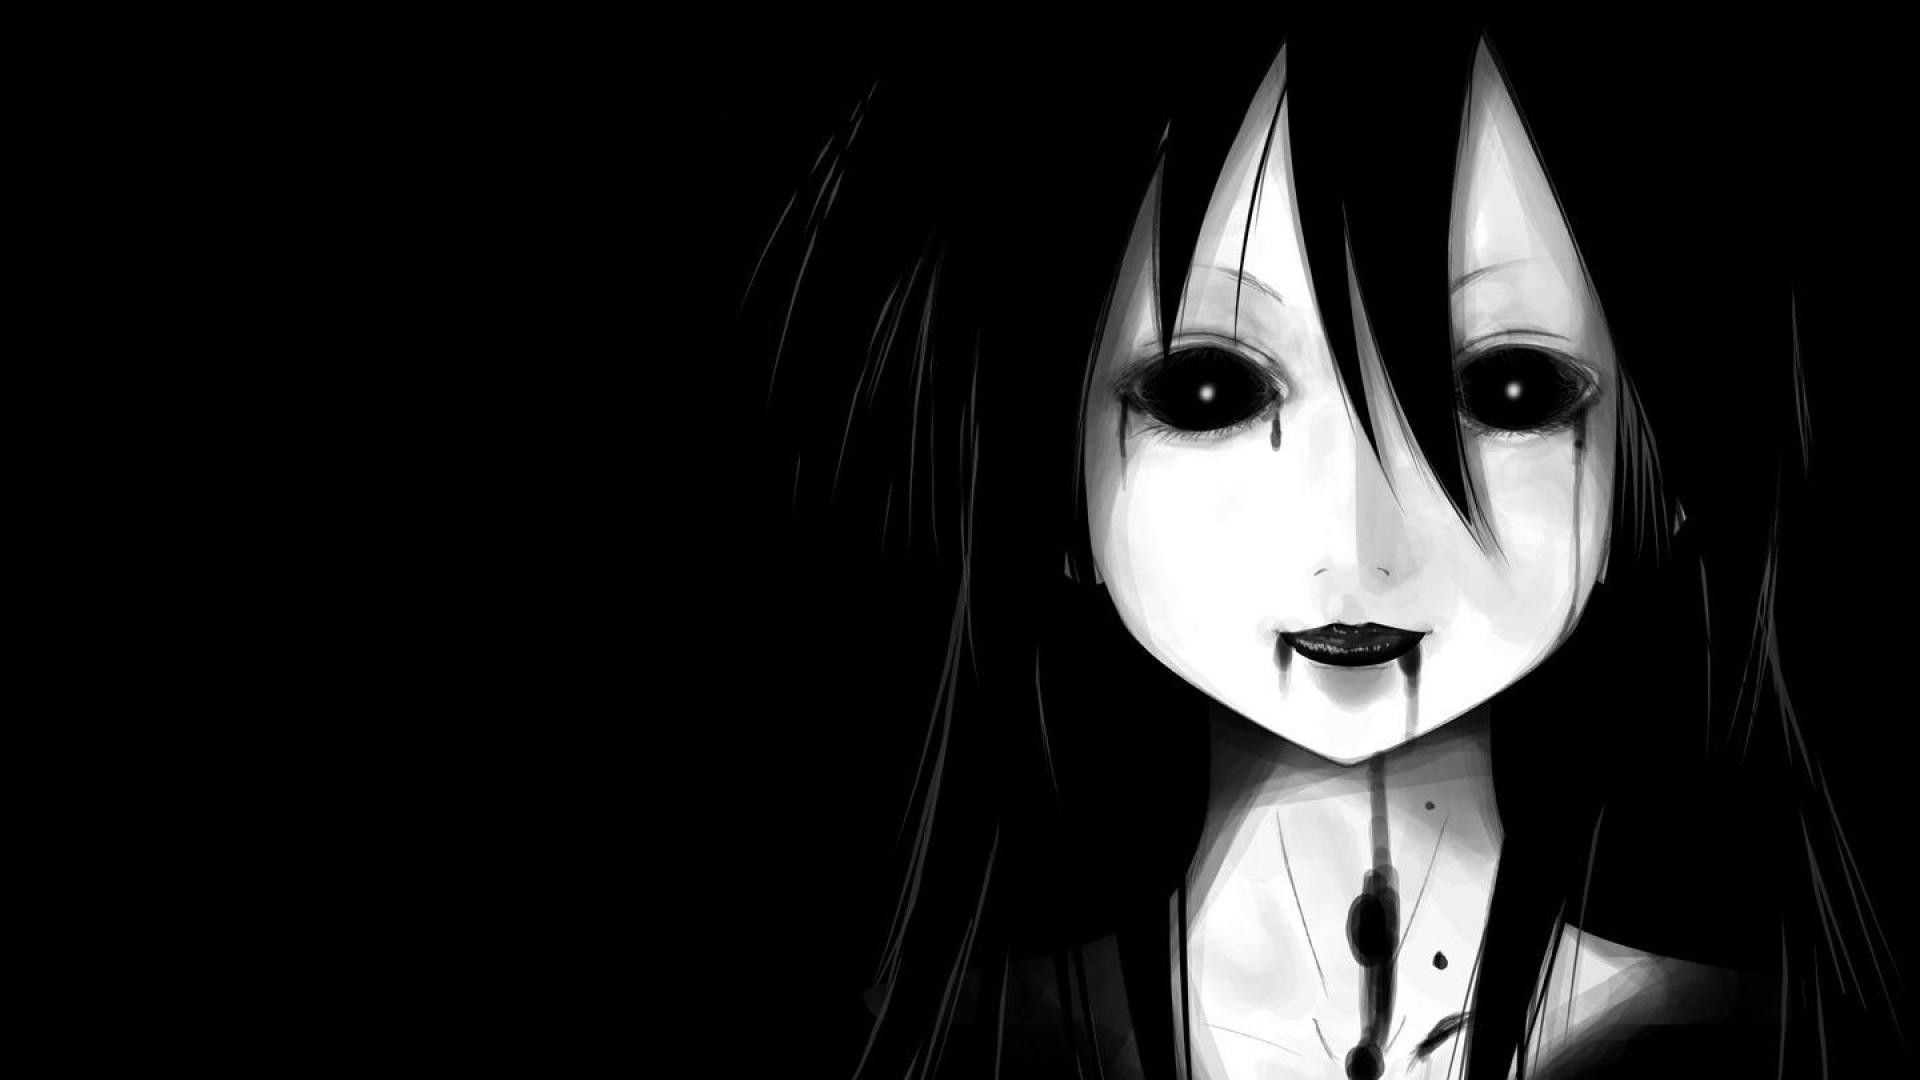 Anime Black And White Full HD Wallpaper